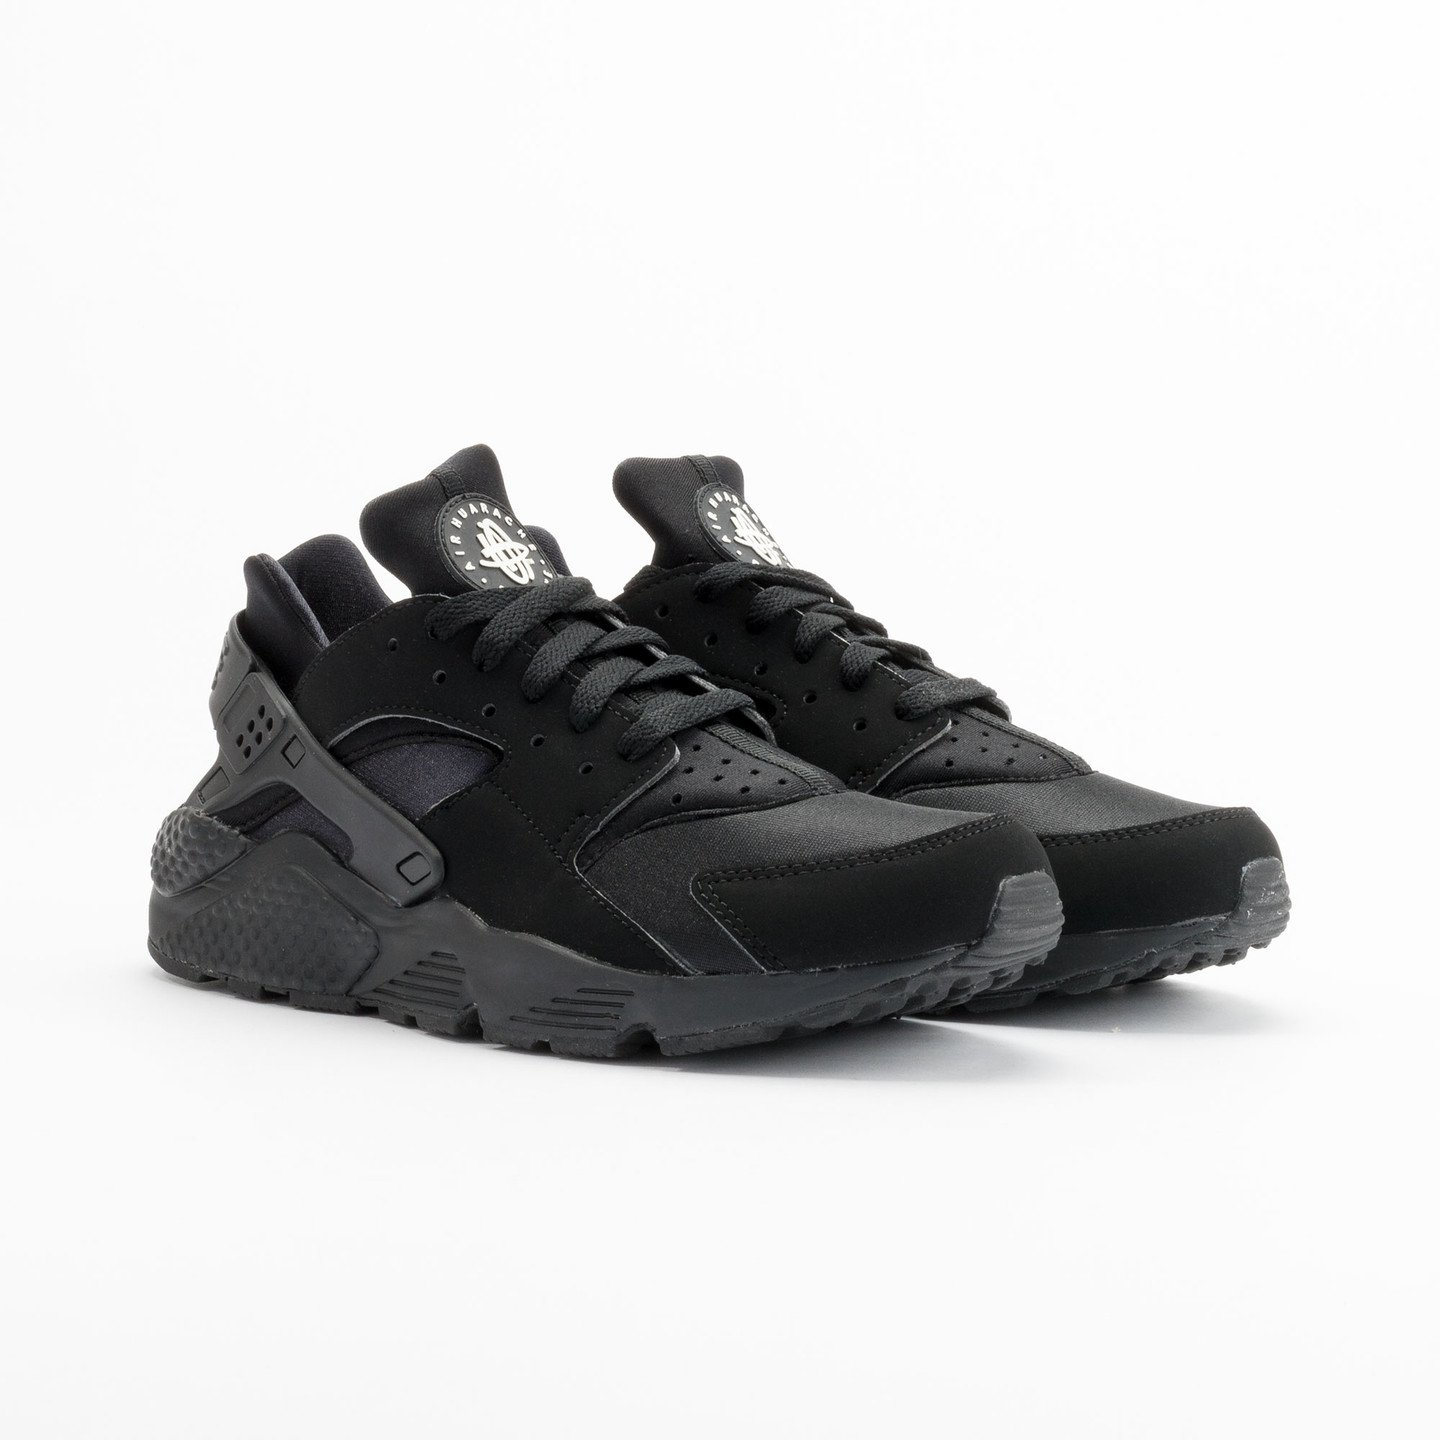 Nike Air Huarache Black/Black-White 318429-003-45.5